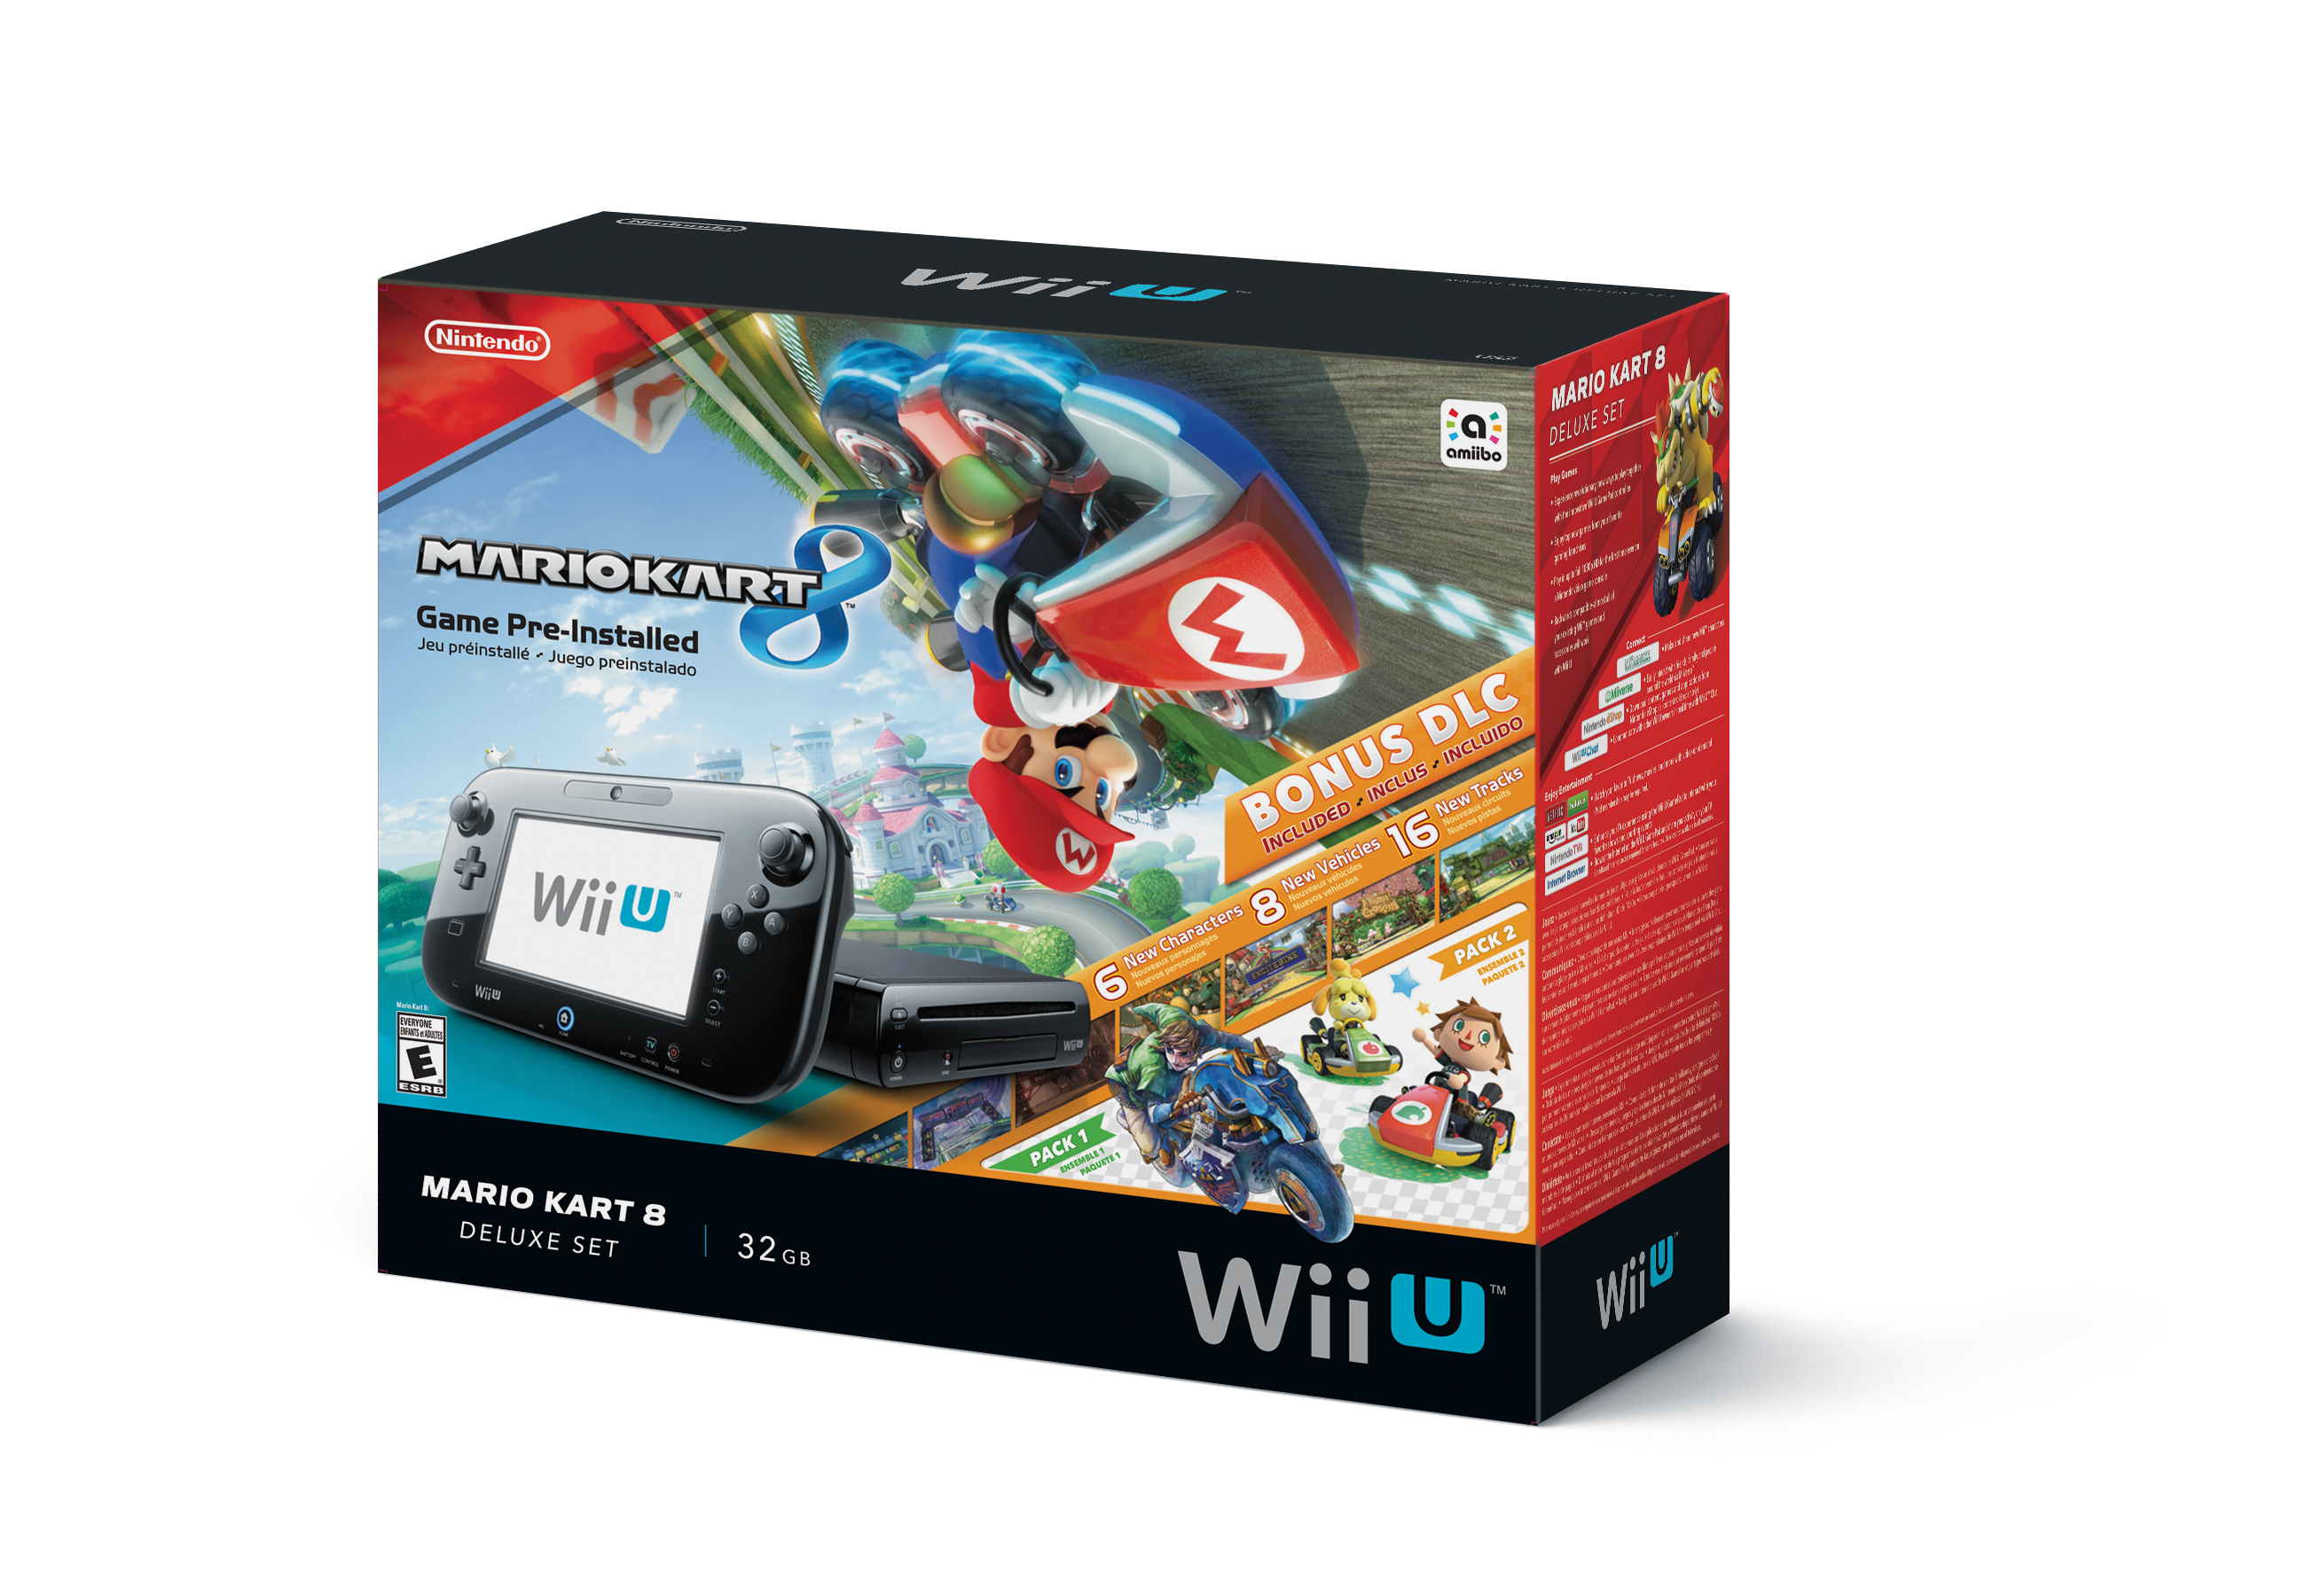 Mario kart 8 for sale - Nintendo News Mario Kart 8 Races Into Living Rooms Of Future Wii U Owners As Part Of A New Configuration Business Wire